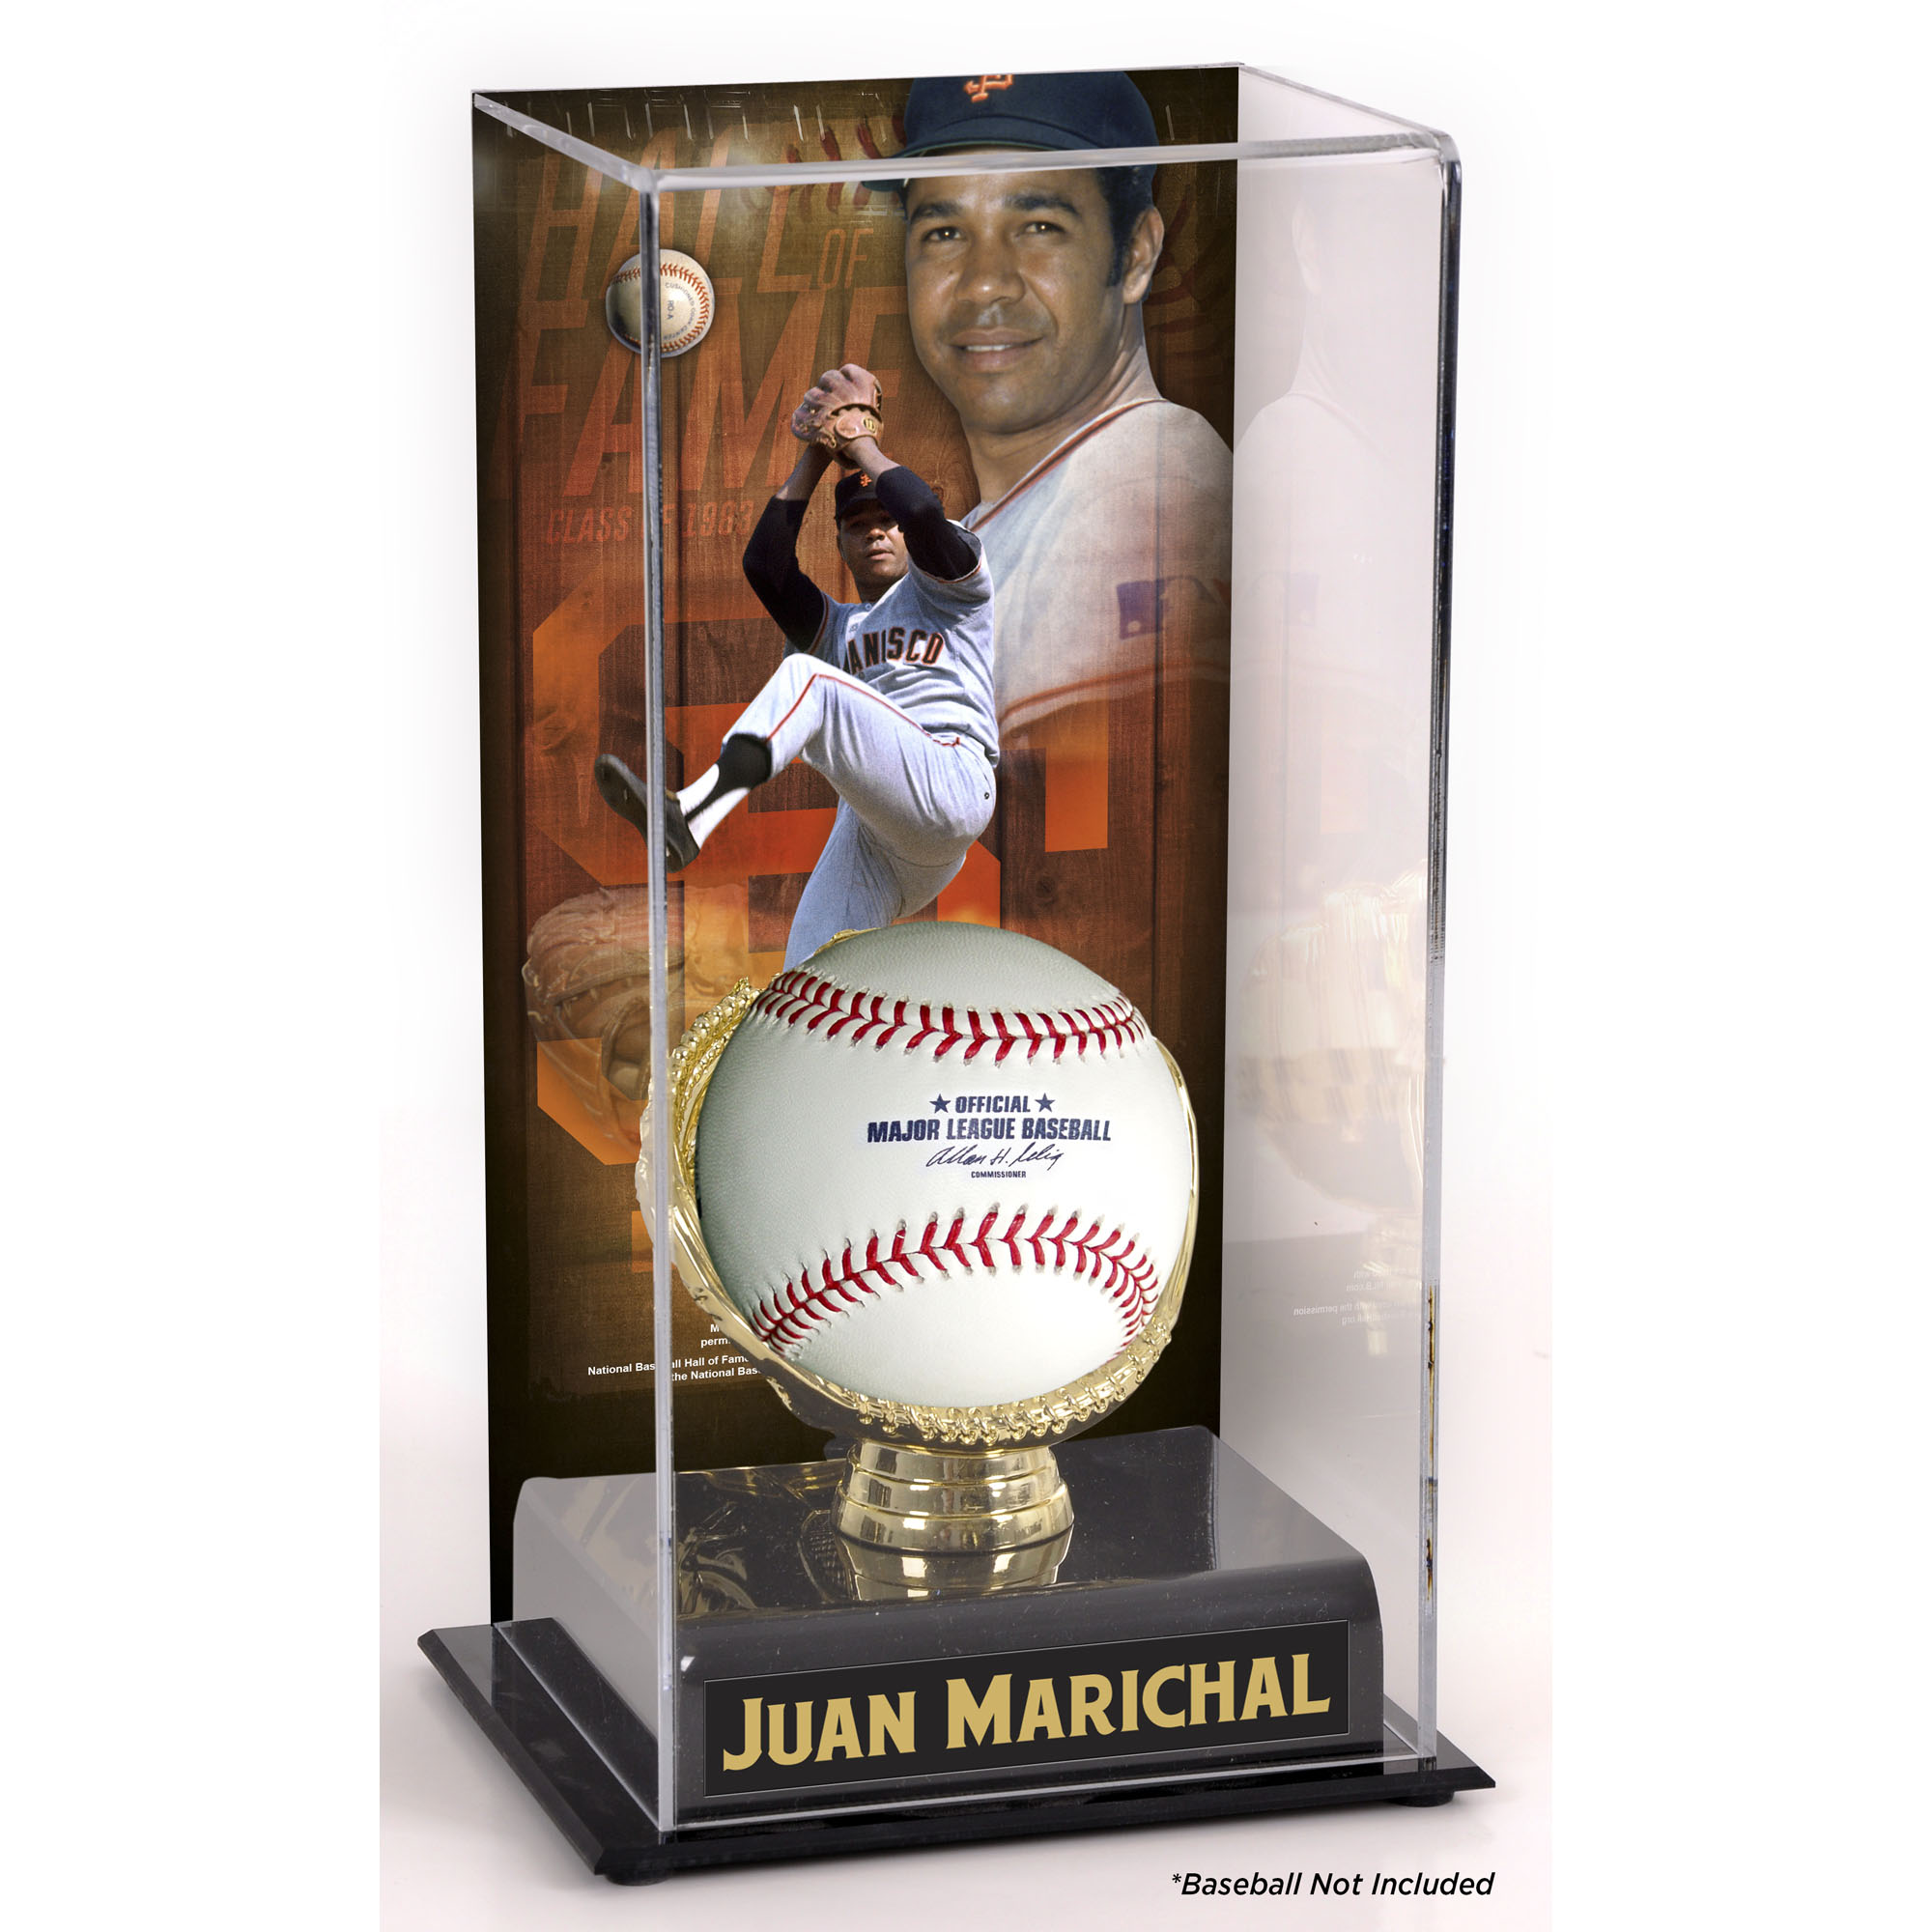 Juan Marichal San Francisco Giants Fanatics Authentic Hall of Fame Sublimated Display Case with Image - No Size